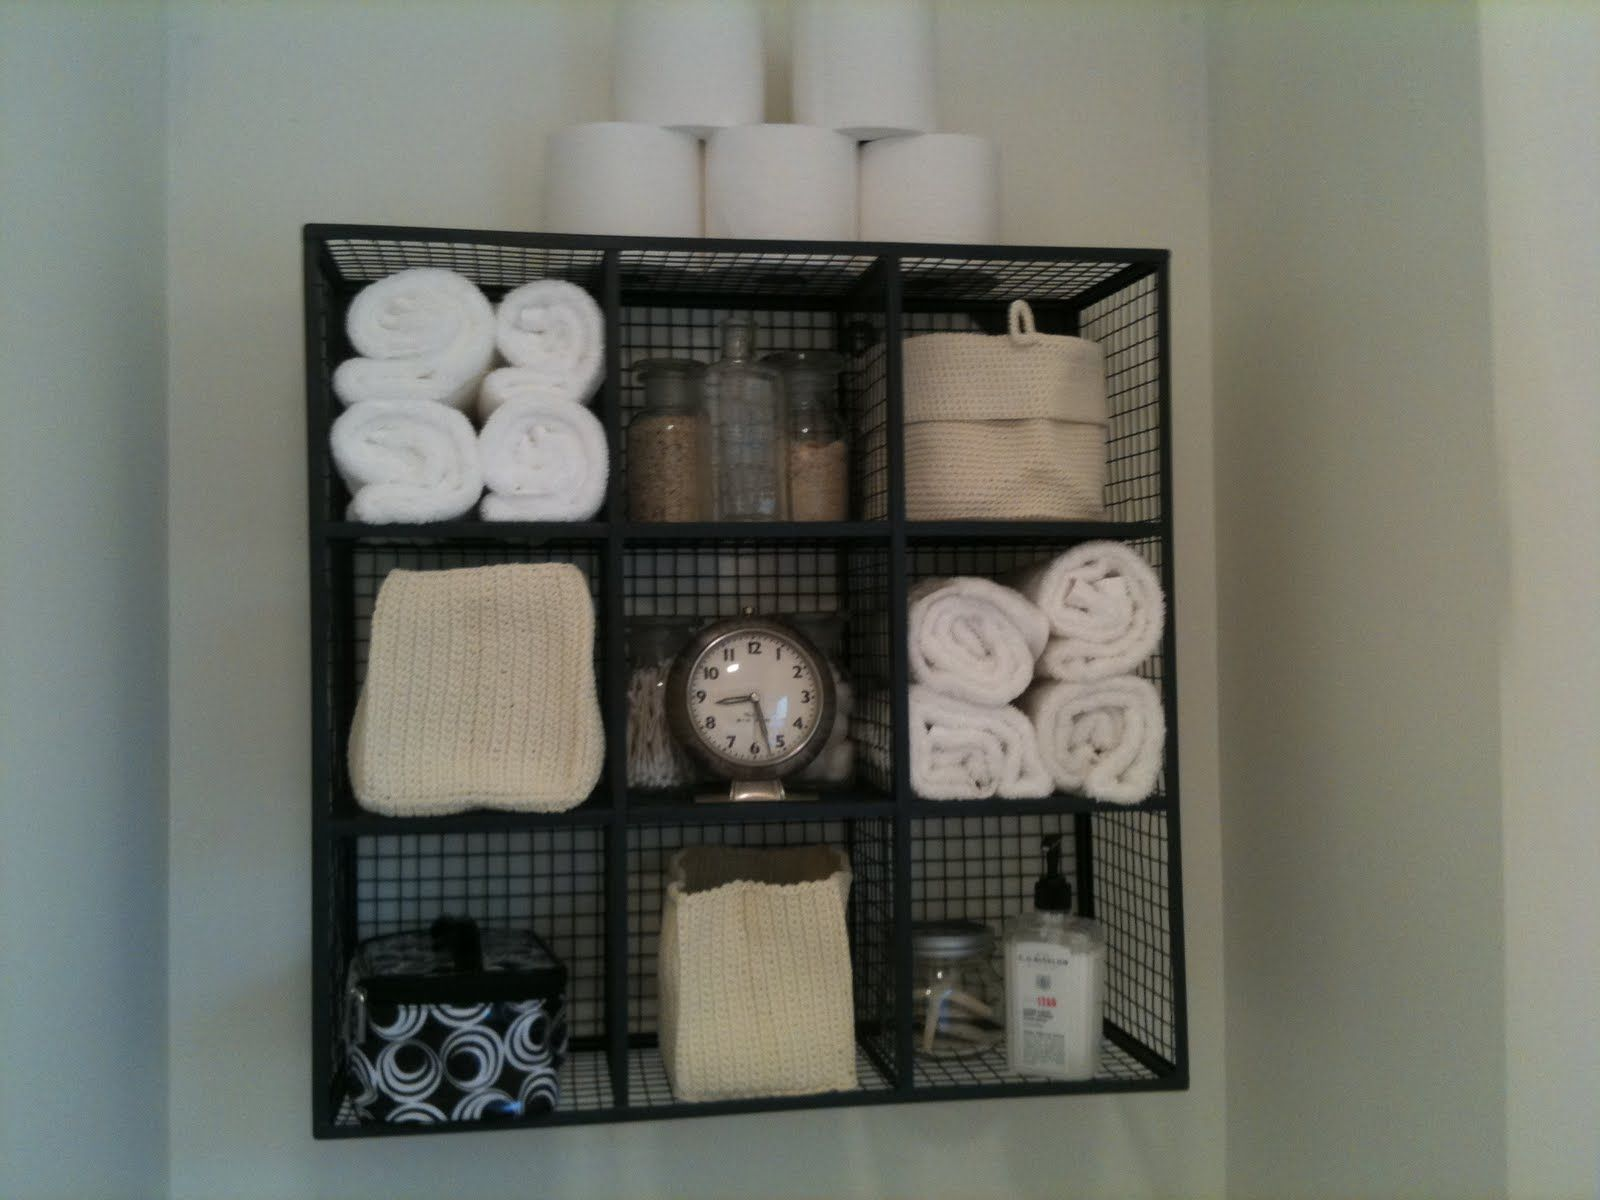 Bathroom storage for towels - 1000 Ideas About Toilet Storage On Pinterest Over Toilet Storage Toilet Room And Powder Room Storage